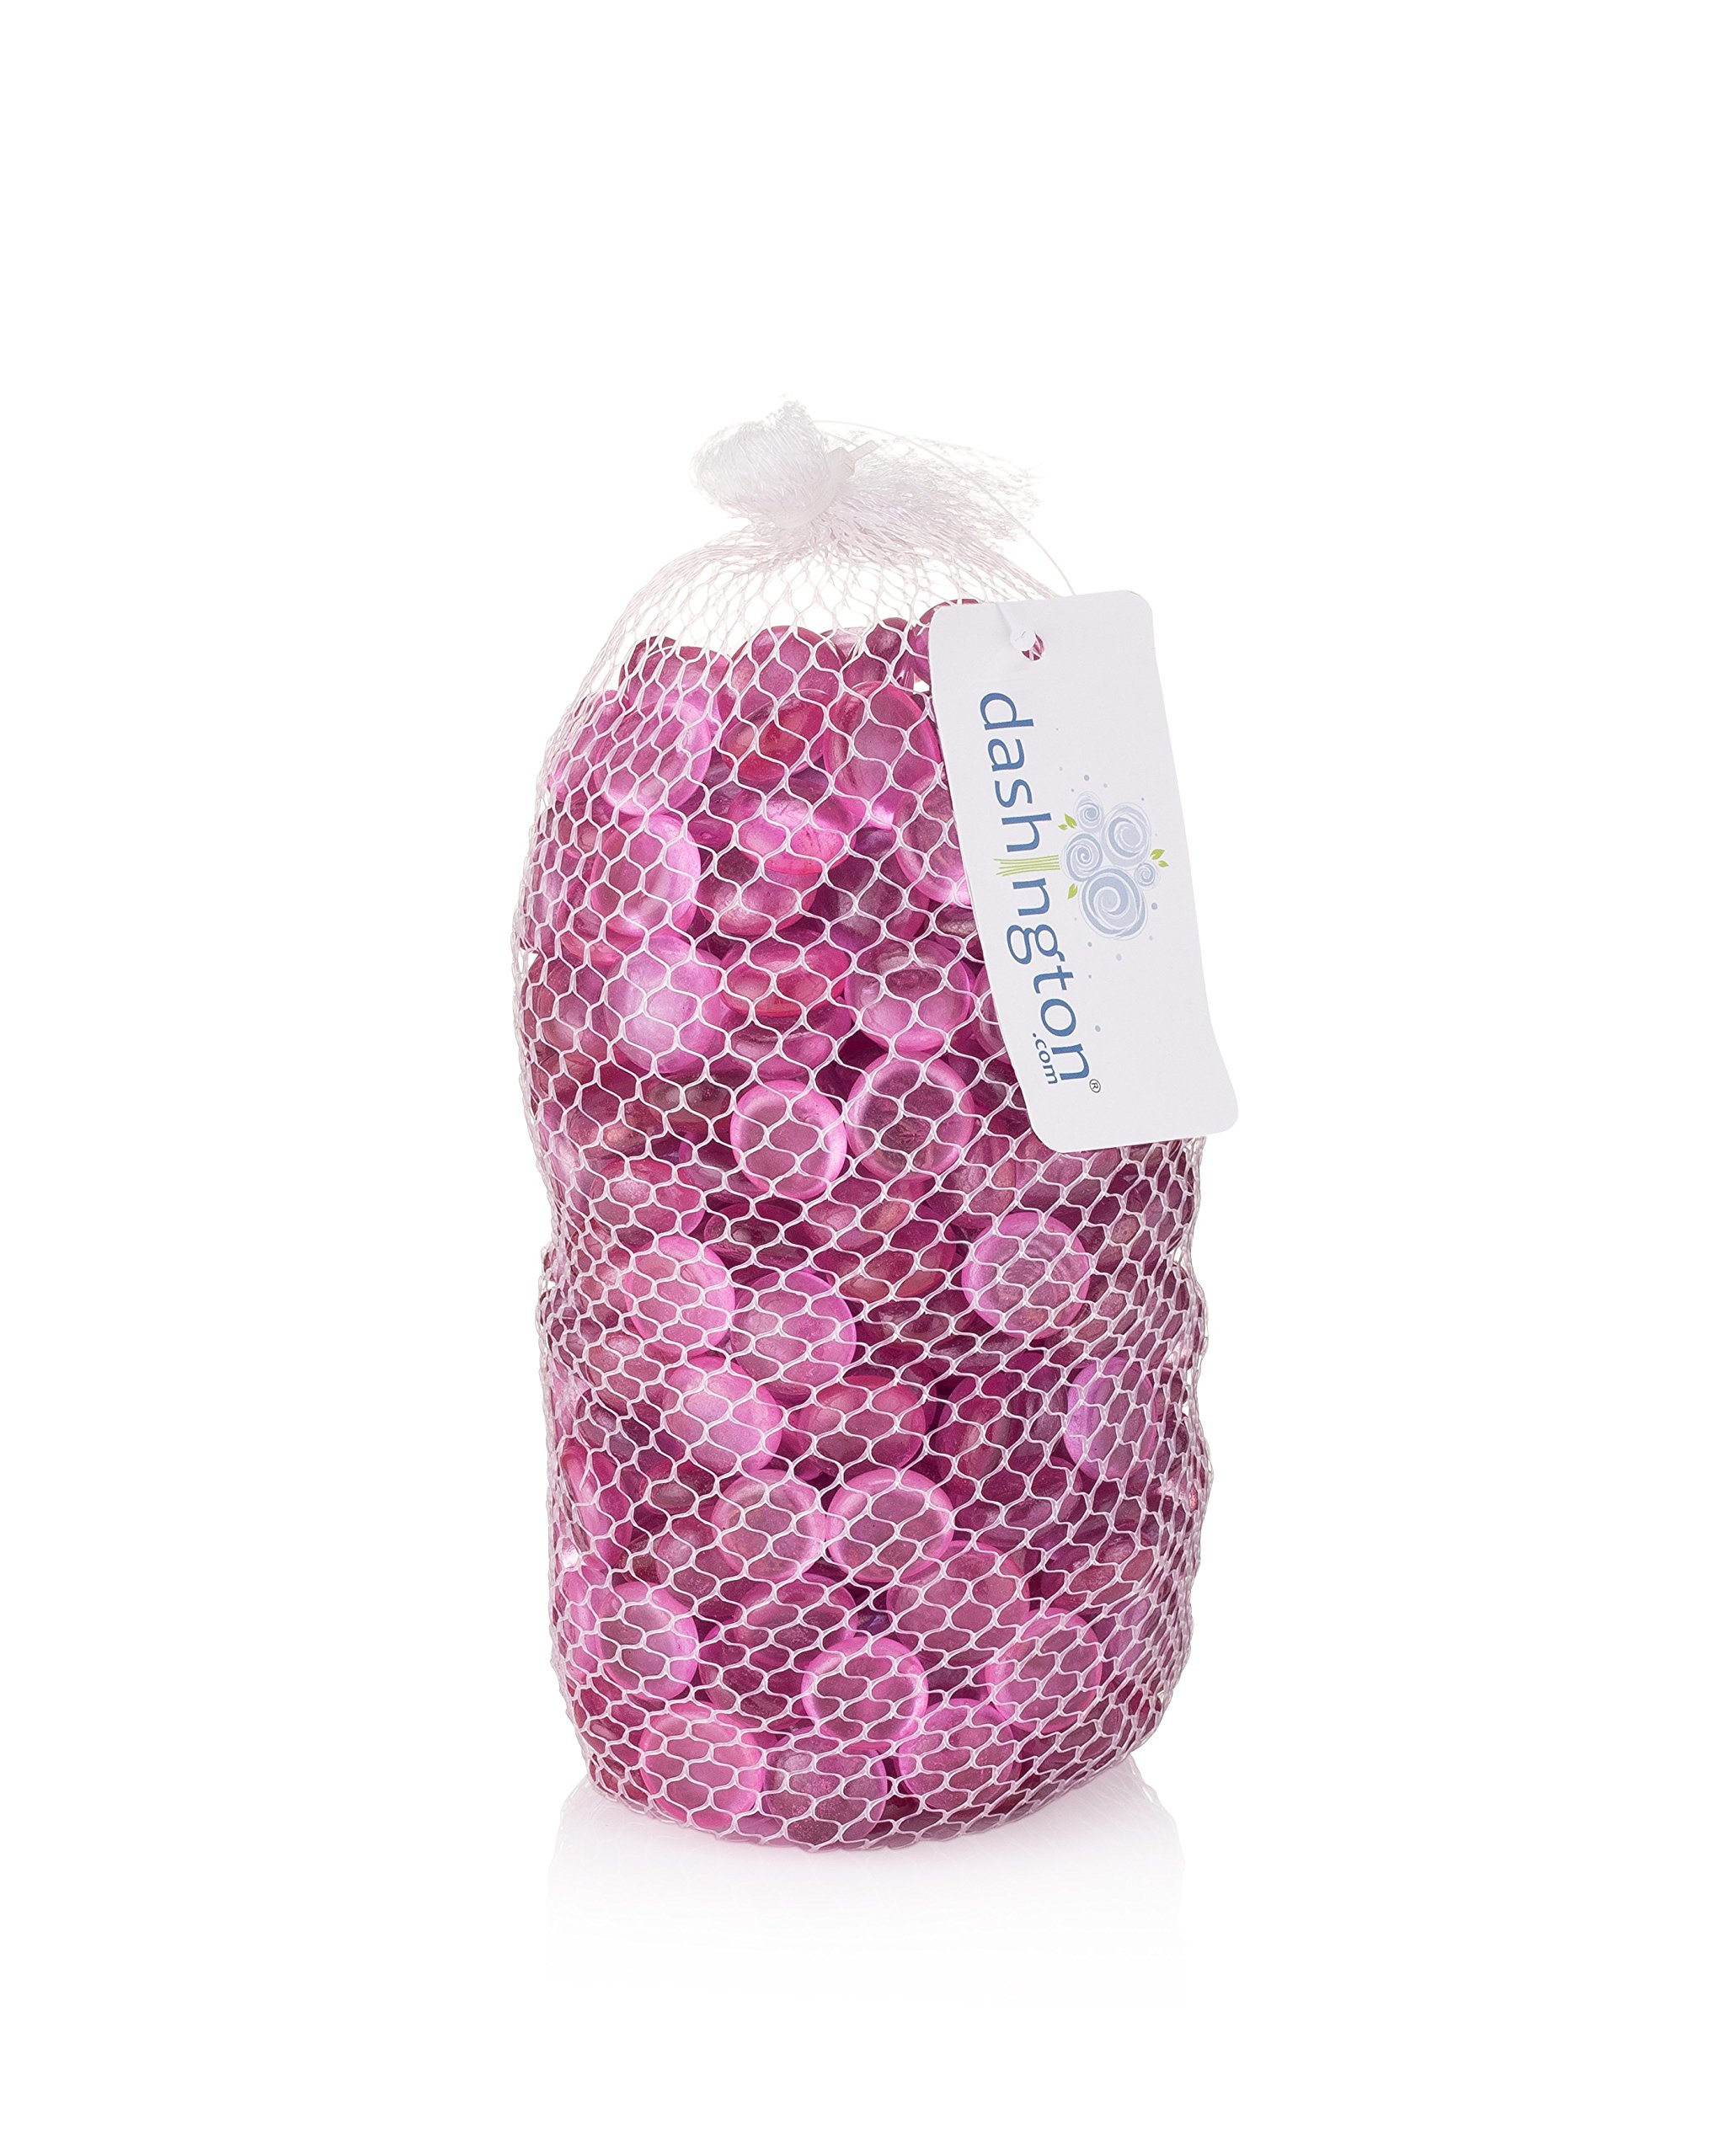 Amazon flat clear marbles pebbles 5 pound bag for vase dashington flat pink marbles pebbles 5 pound bag80oz for vase filler reviewsmspy